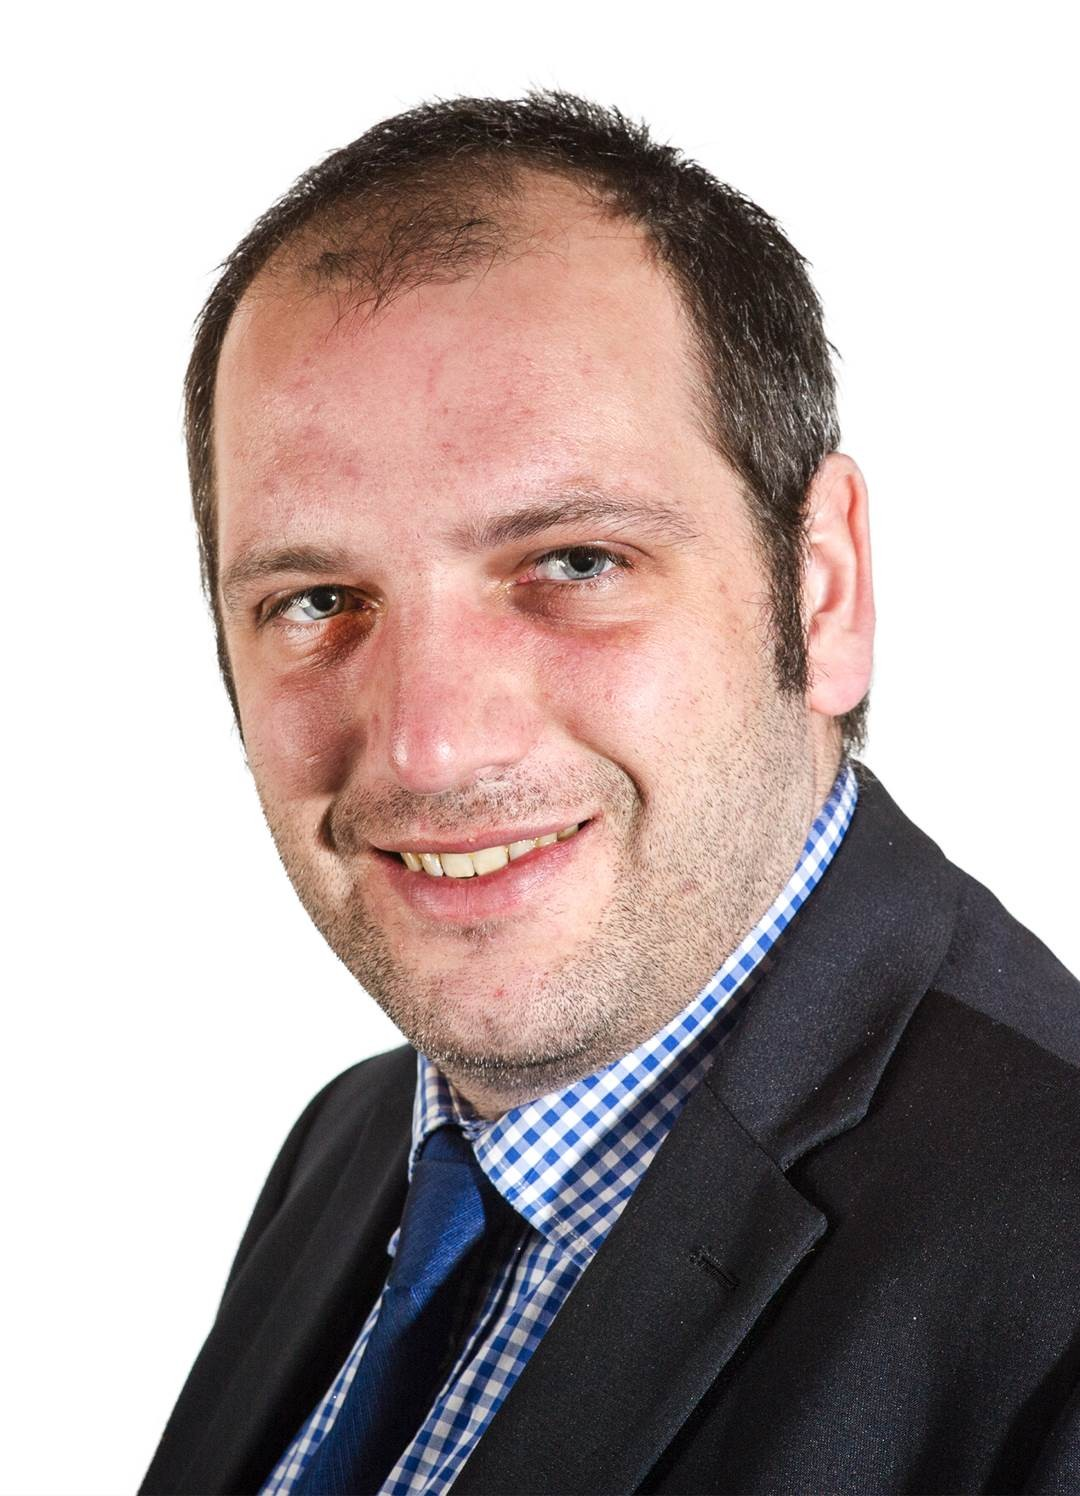 GORDON LUTTON EXPANDS RESIDENTIAL PROPERTY DEPARTMENT